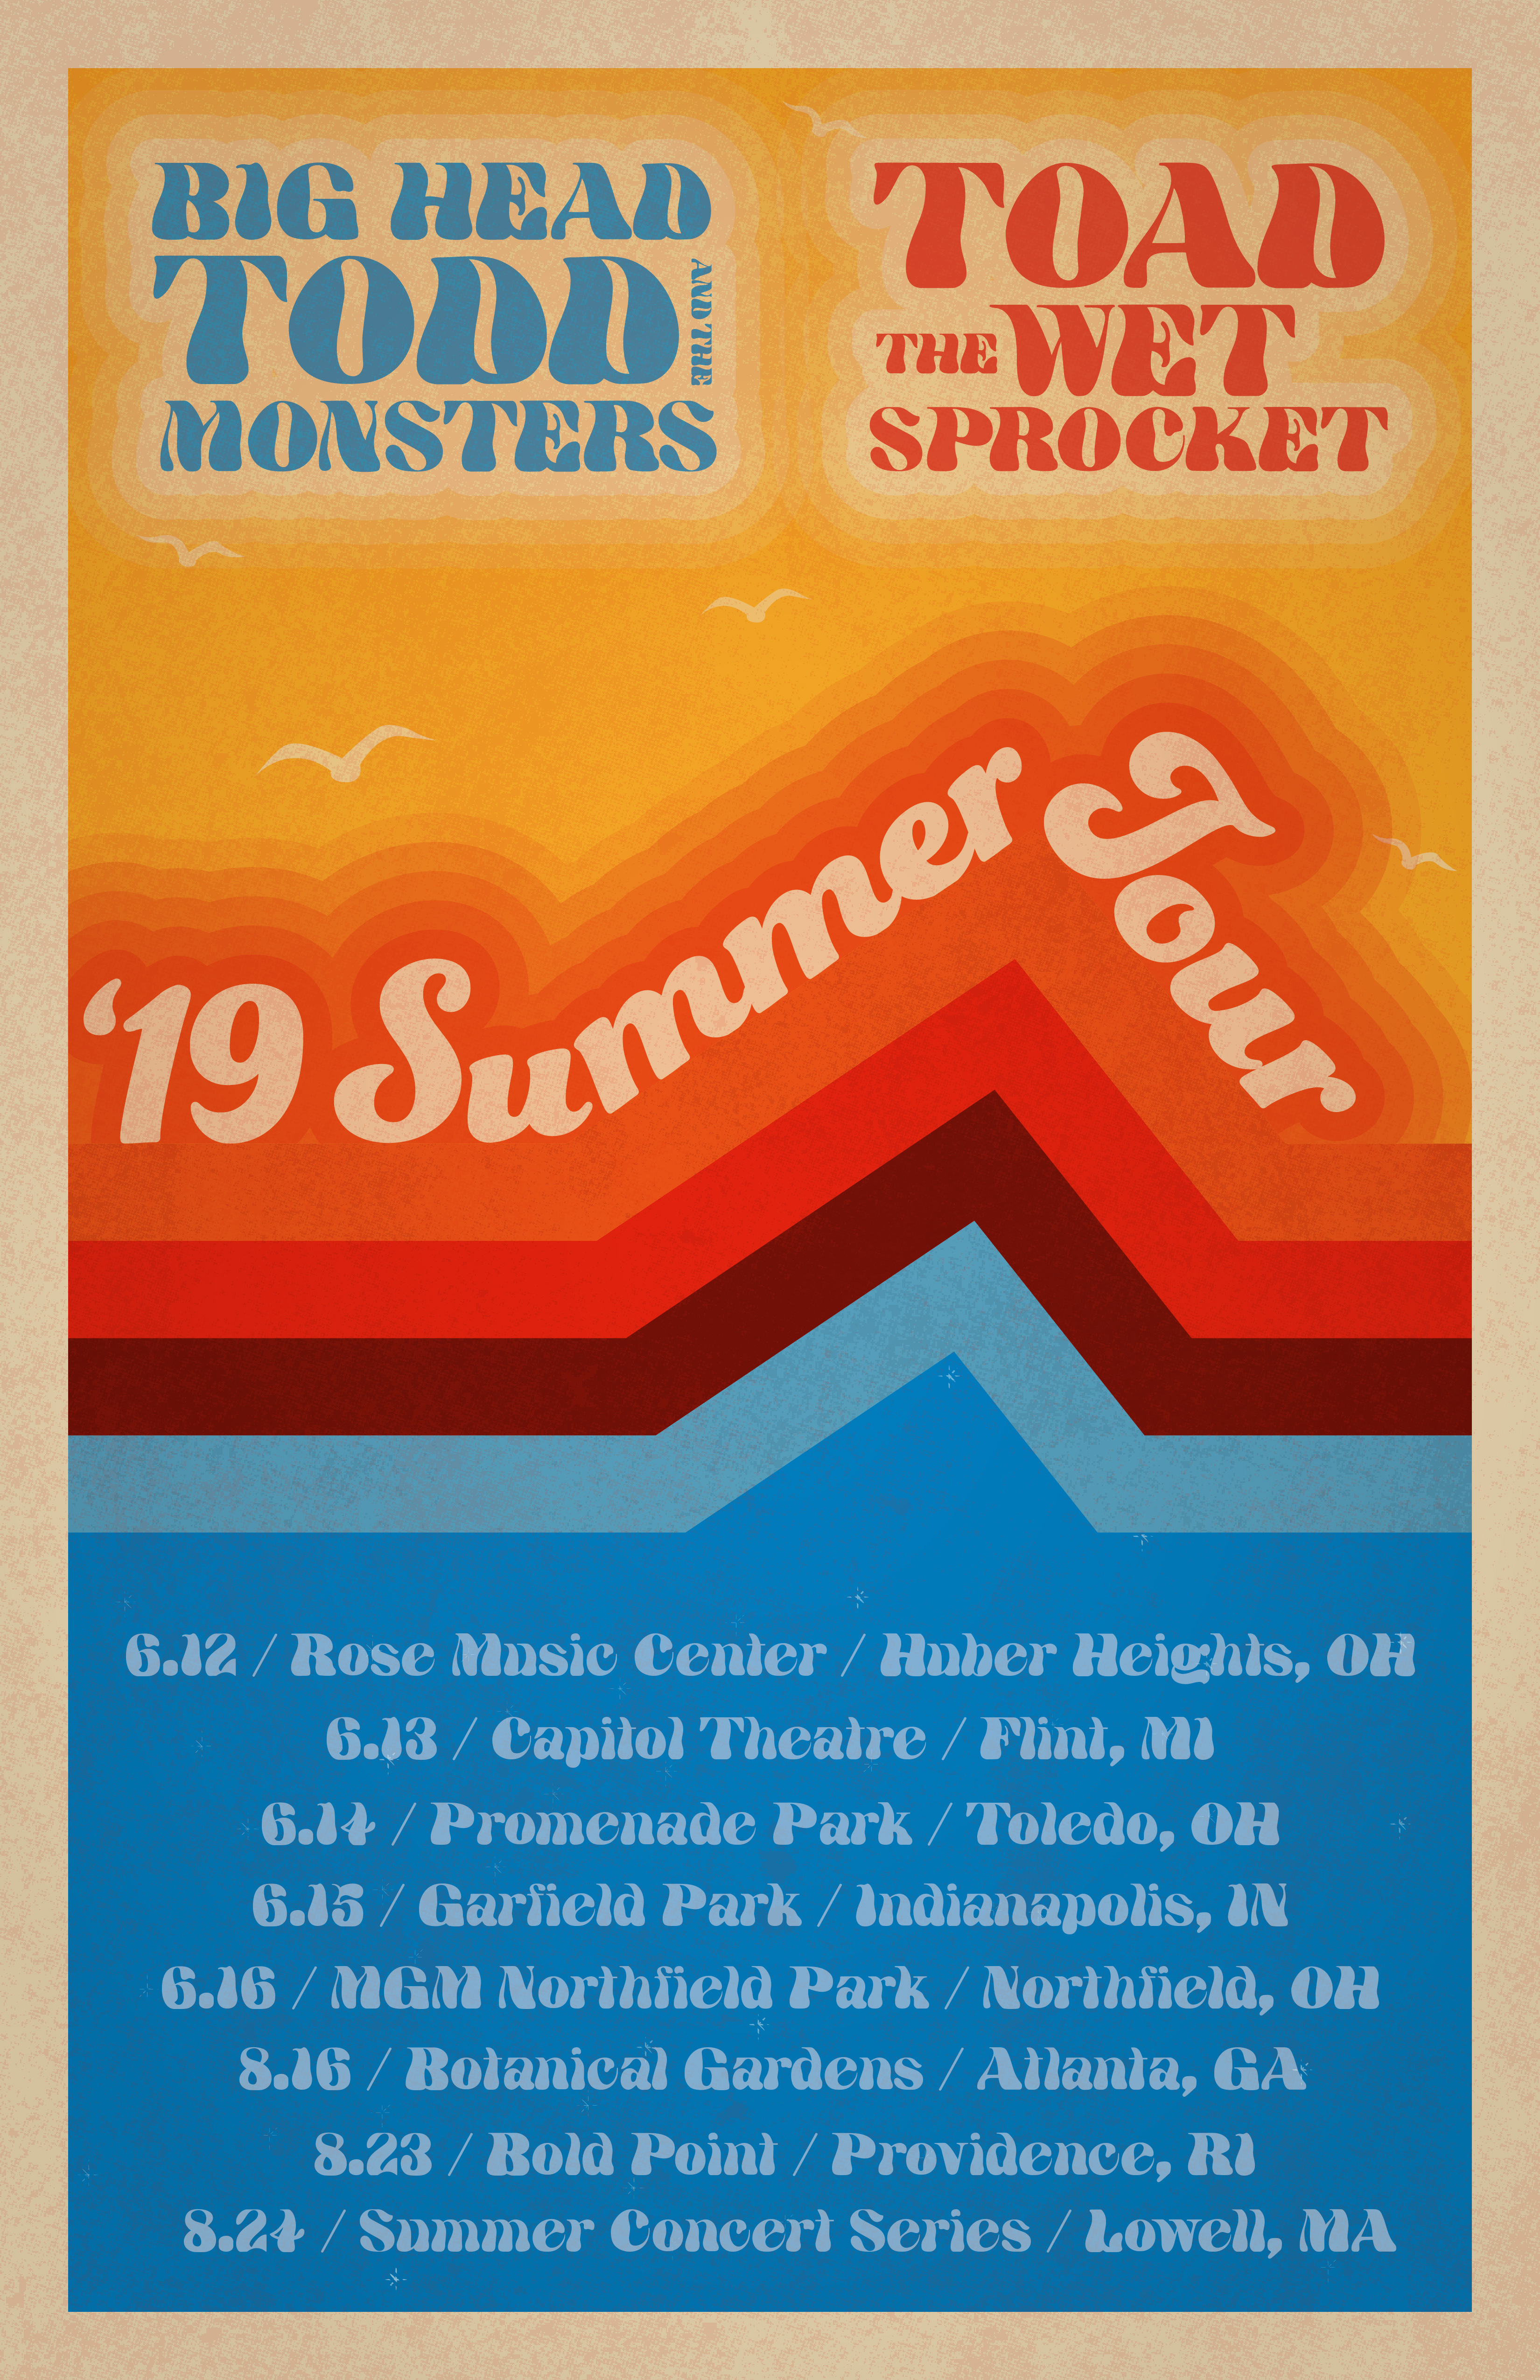 Summer Tour Announced: BHTM + Toad the Wet Sprocket